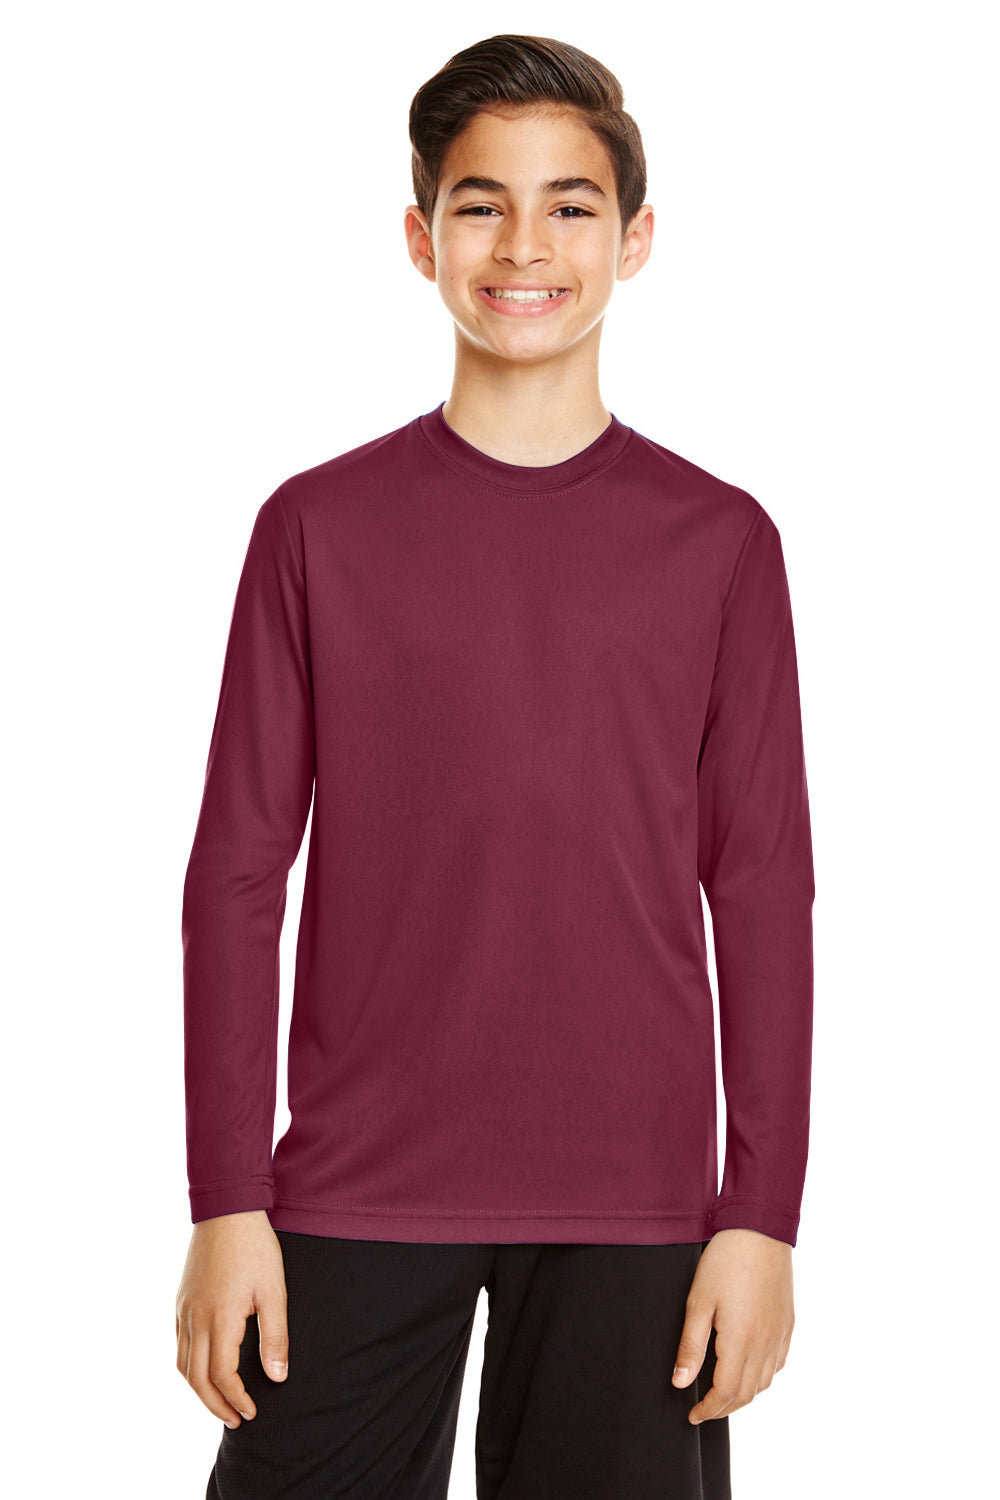 Team 365 TT11YL Zone Performance Moisture Wicking Long Sleeve Crewneck T-Shirt Maroon Front